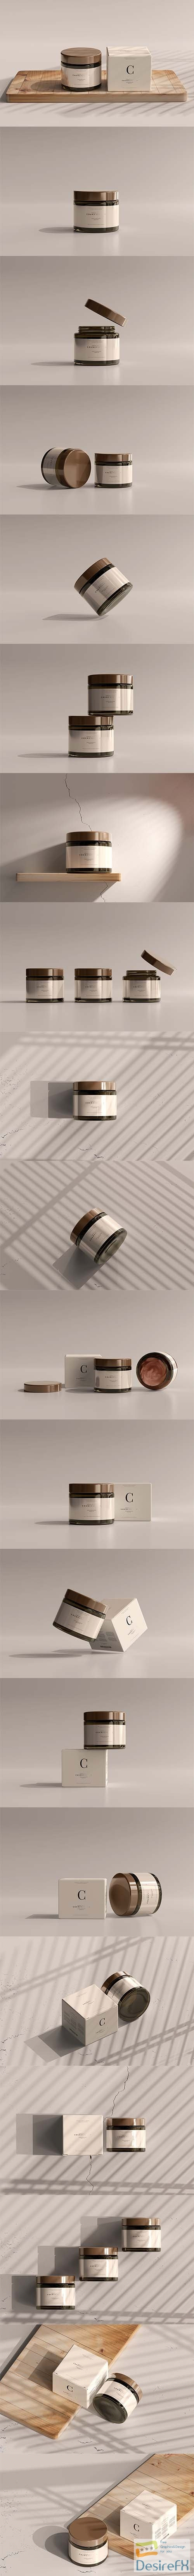 Amber glass cosmetic jar and box mockup